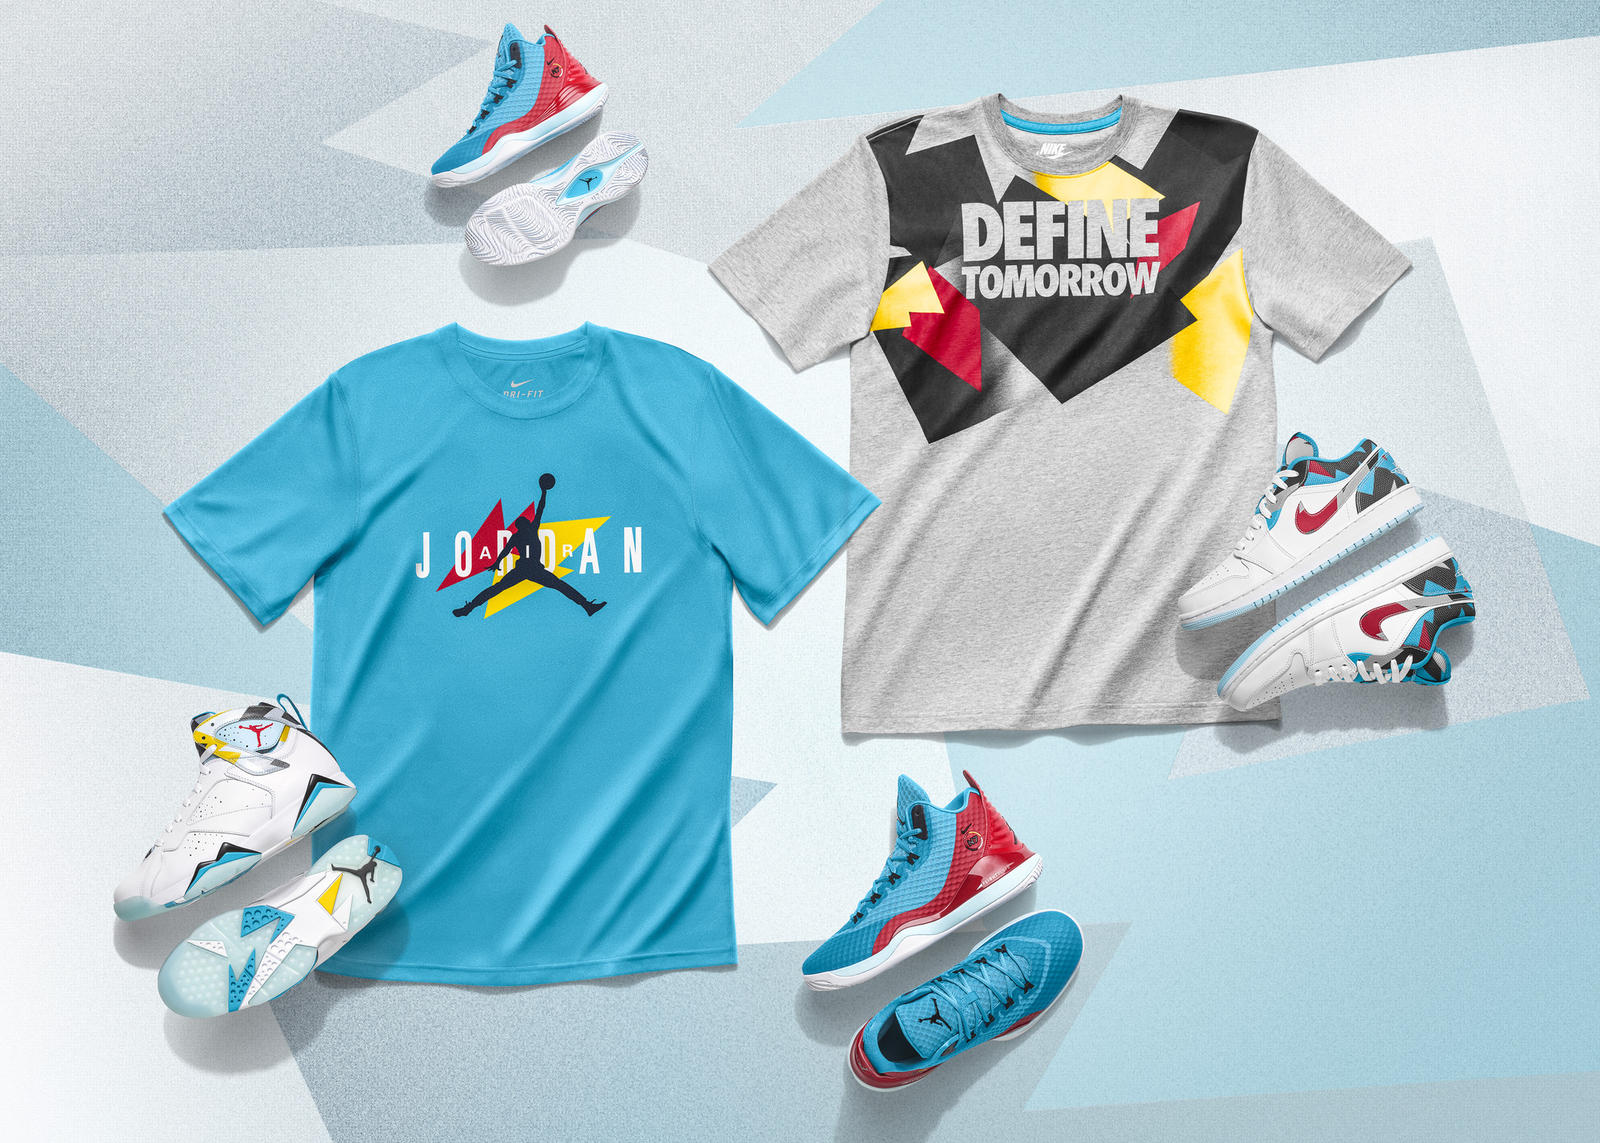 4c4417520d5d N7 and Jordan Brand Join Forces For The Summer 2015 Collection ...